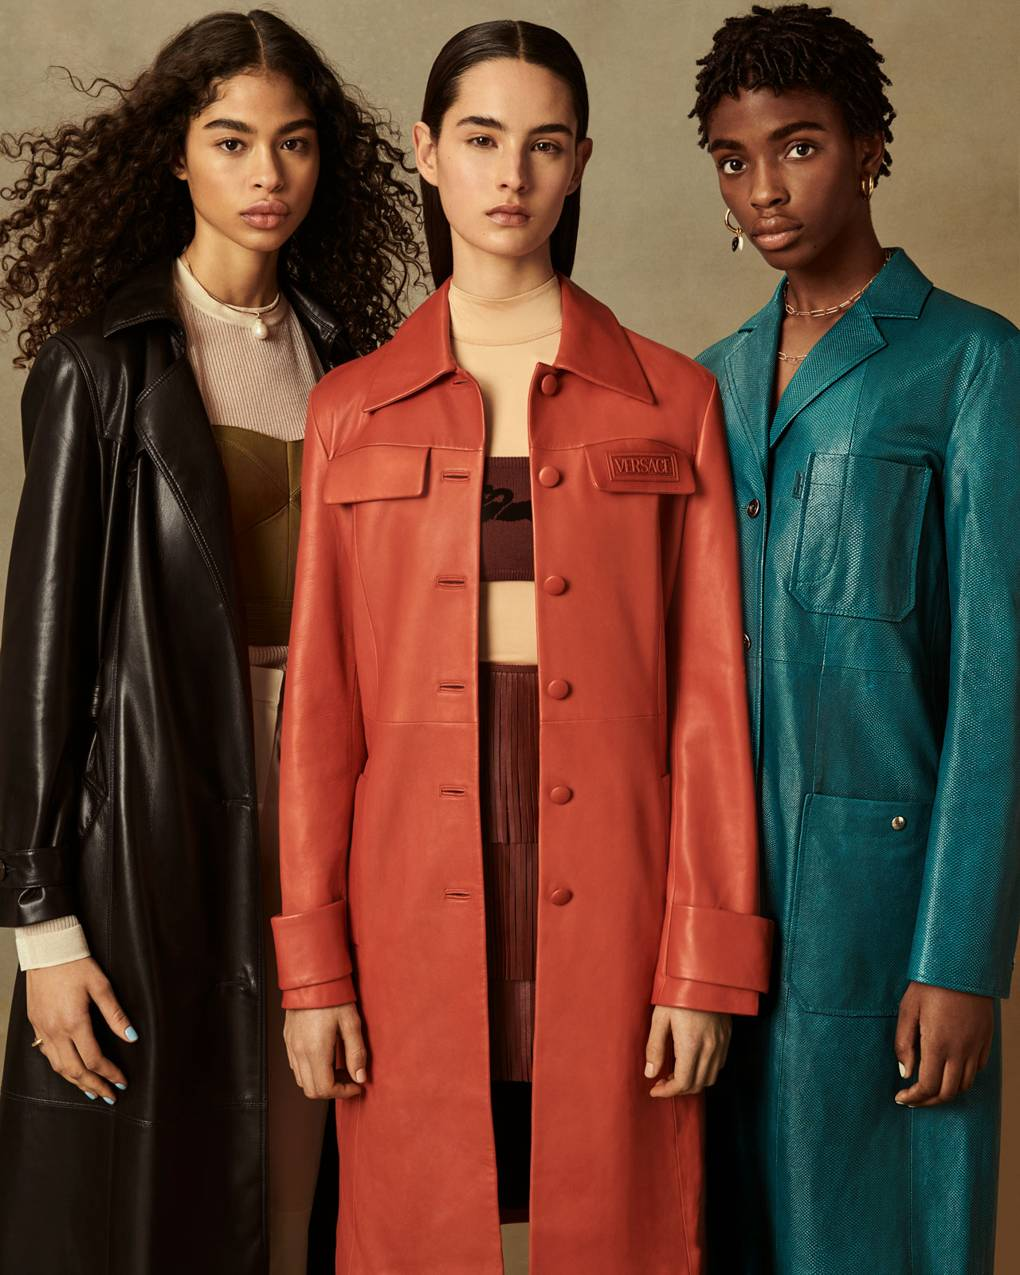 63d029c594a7f1 Spring Coats 2019  Shop The Spring Coat Trends For This Season ...